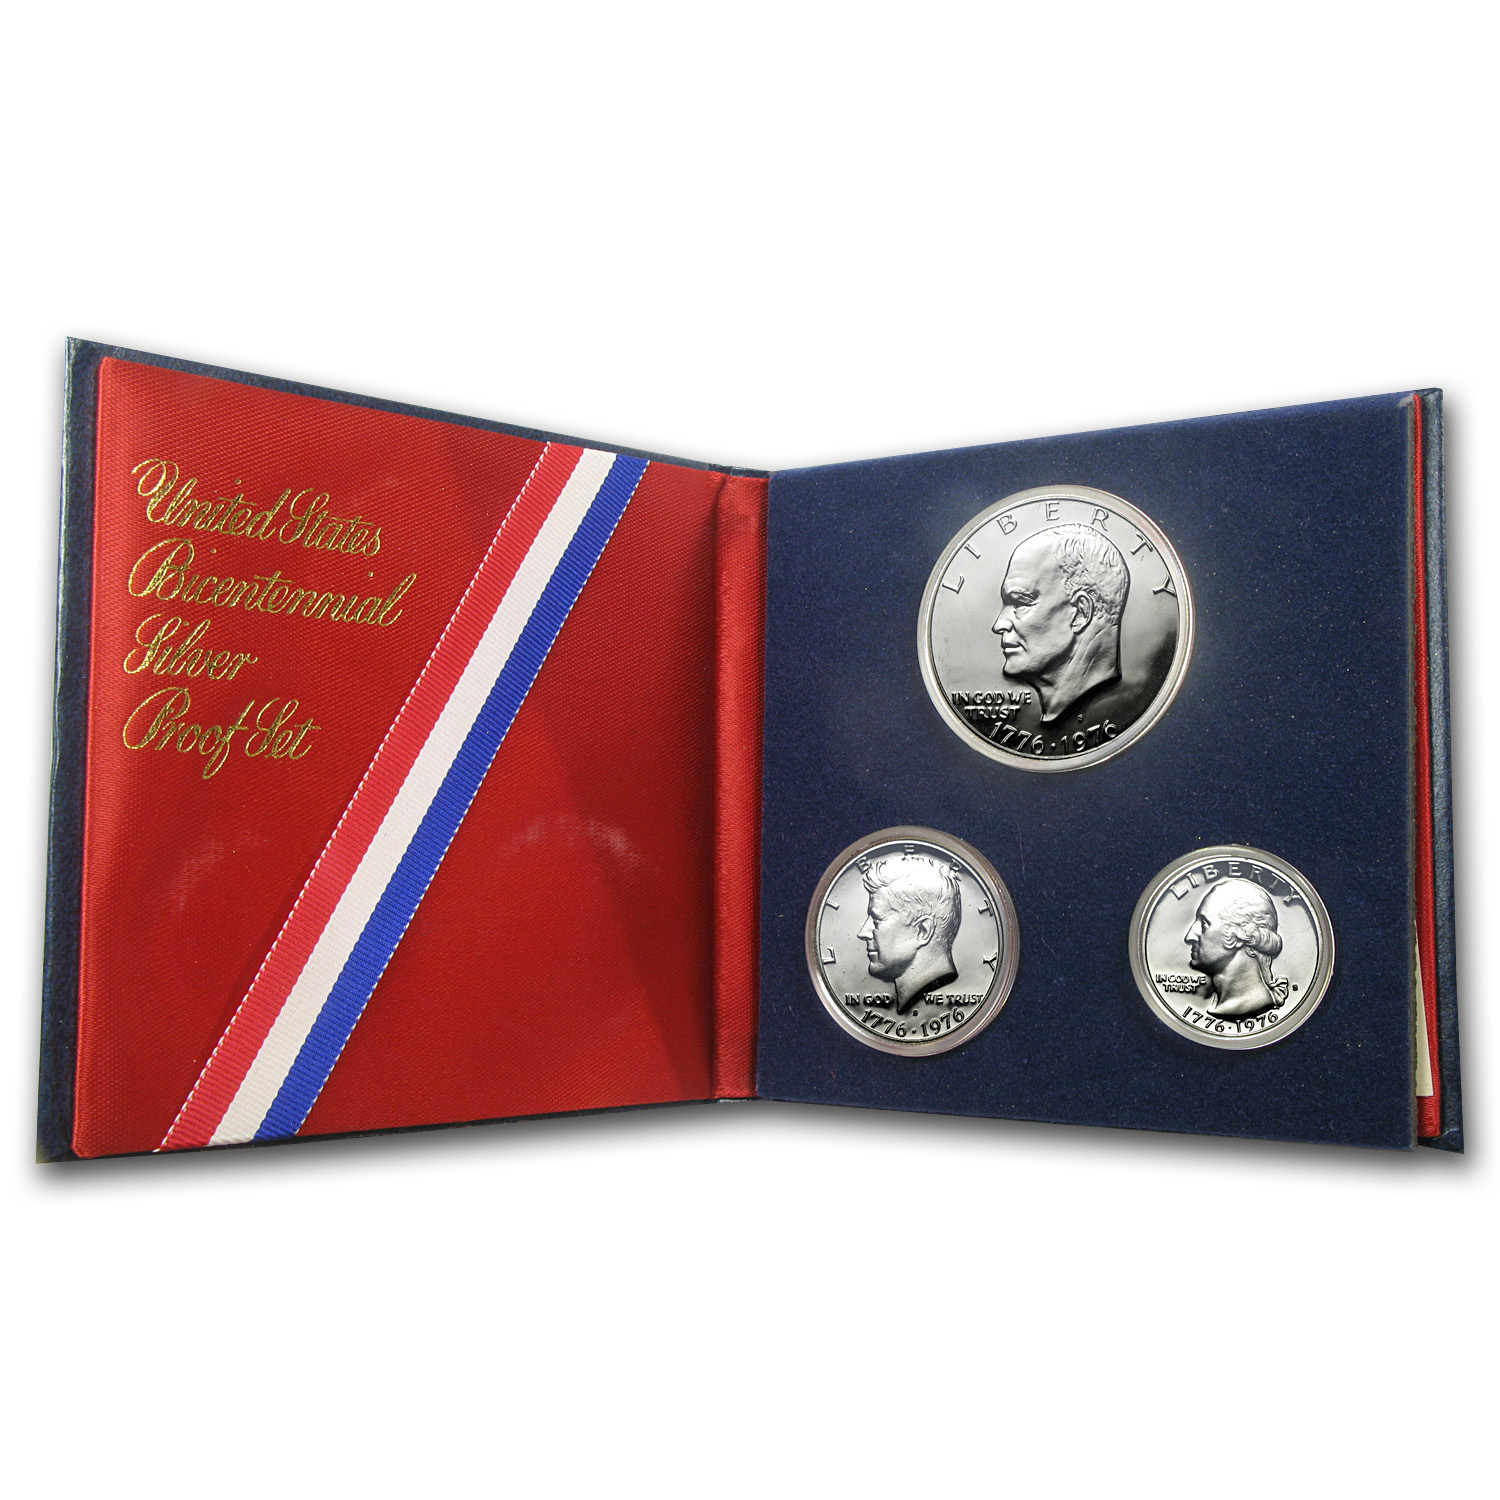 1976 Bicentennial (3 pc. Silver U.S. Proof Set)